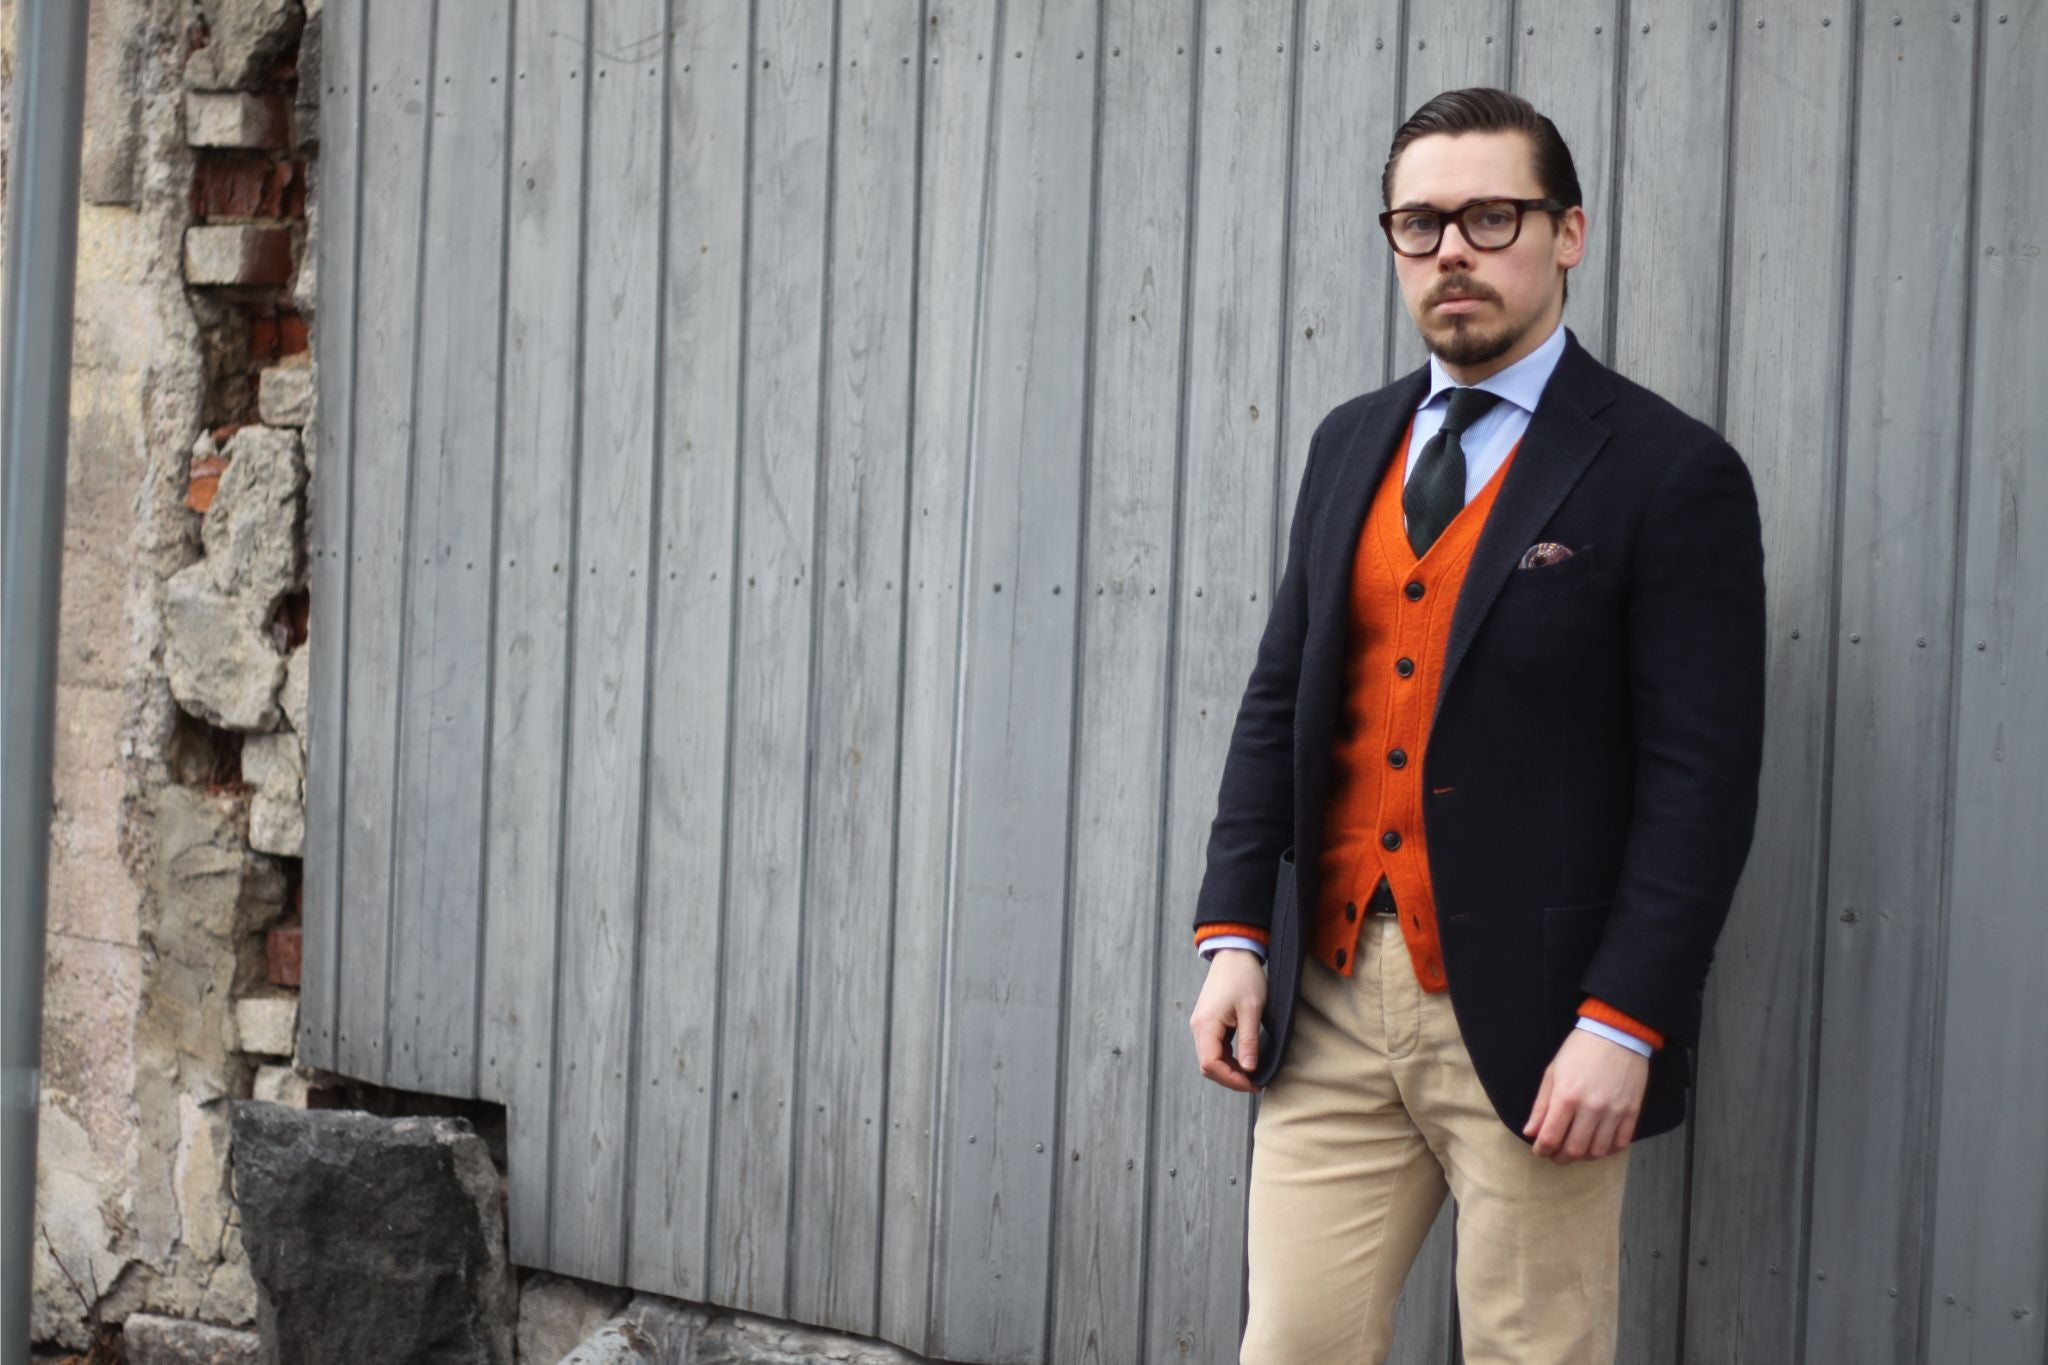 Cardigan with sport coat - blue blazer with orange cardigan and corduroy trousers